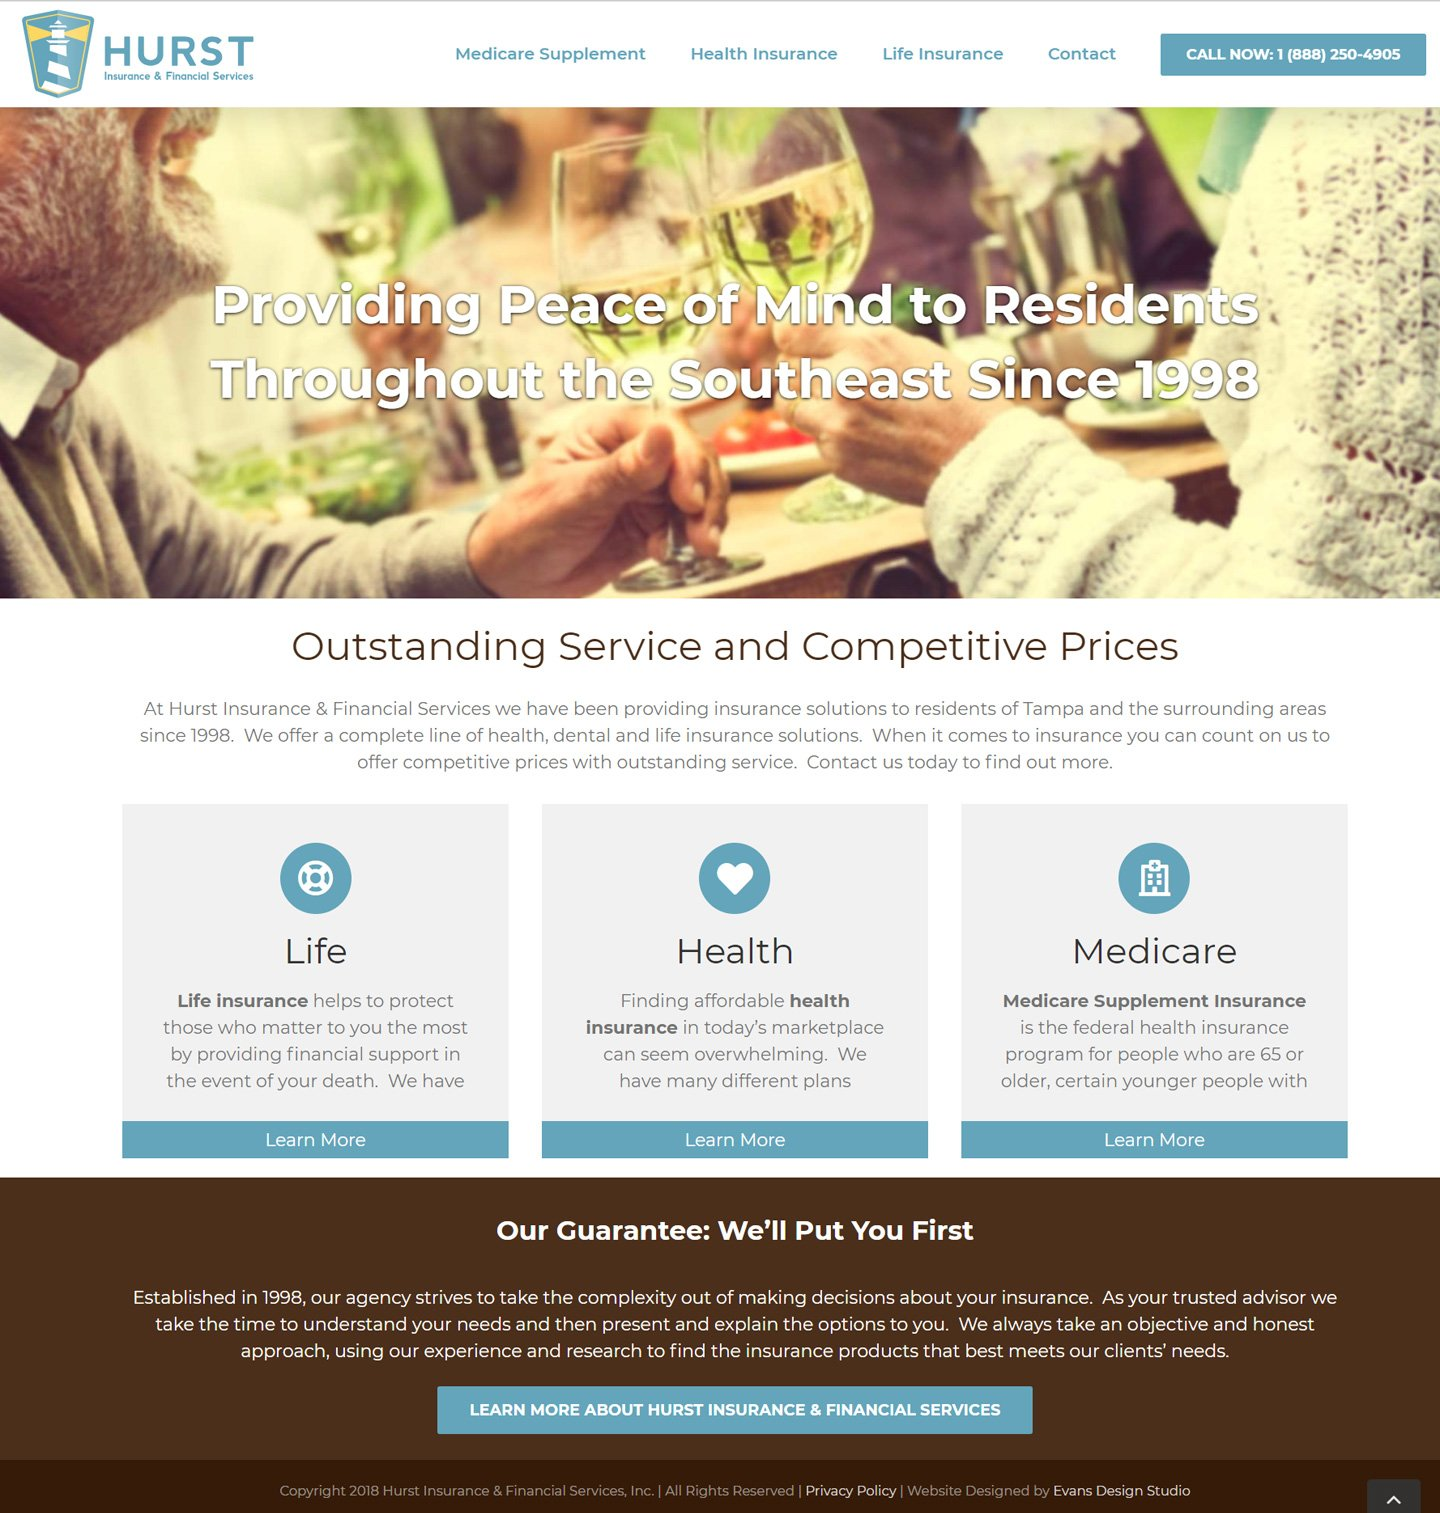 Hurst Insurance & Financial Services Website Design